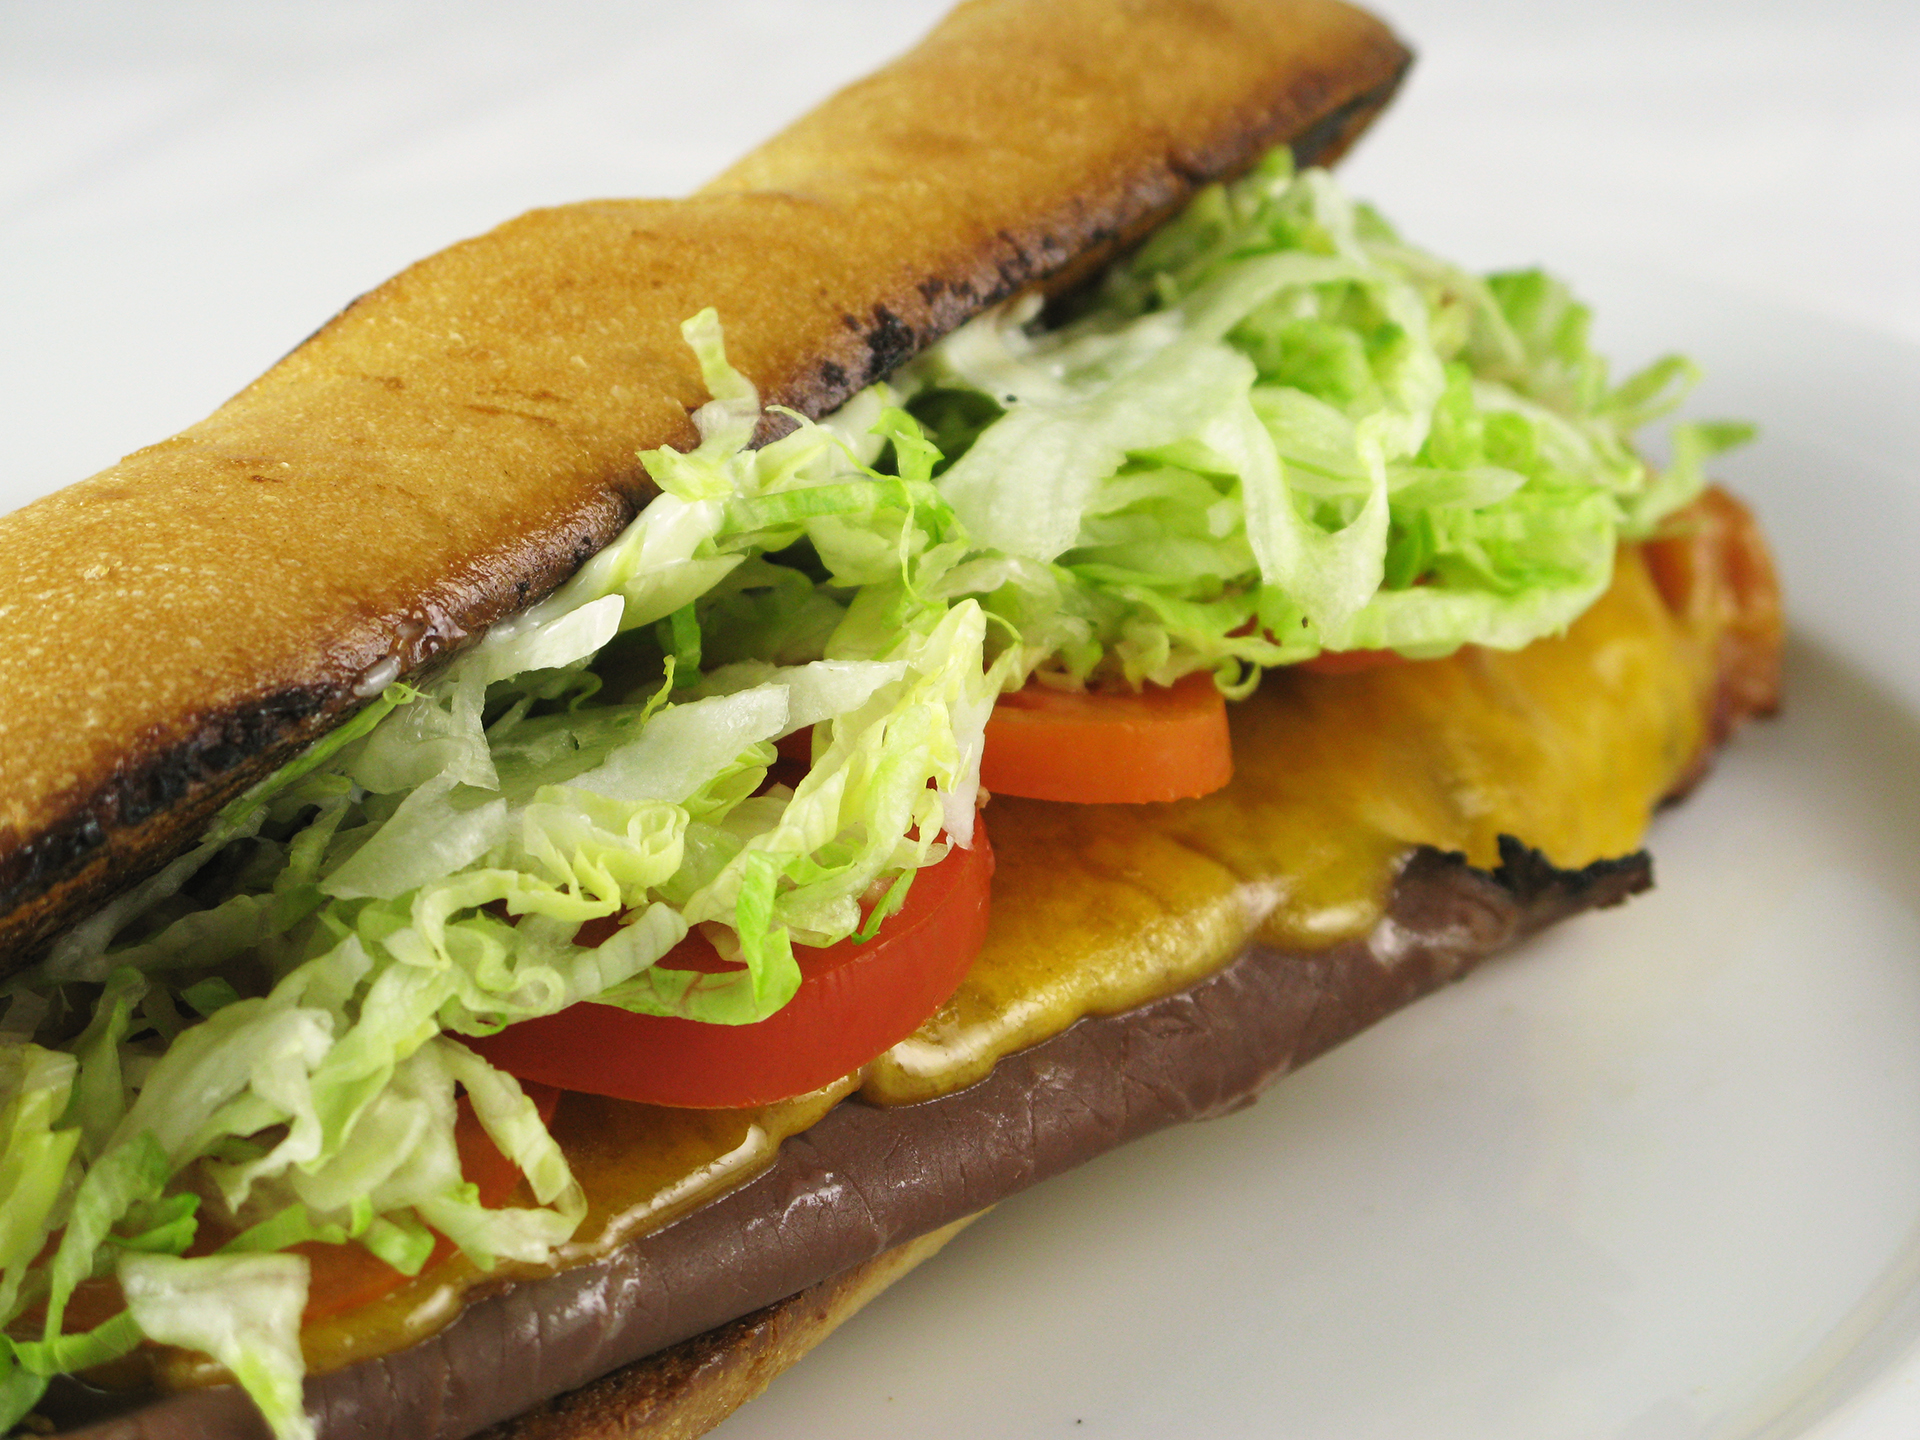 Sub with veggies, cheese, and roast beef